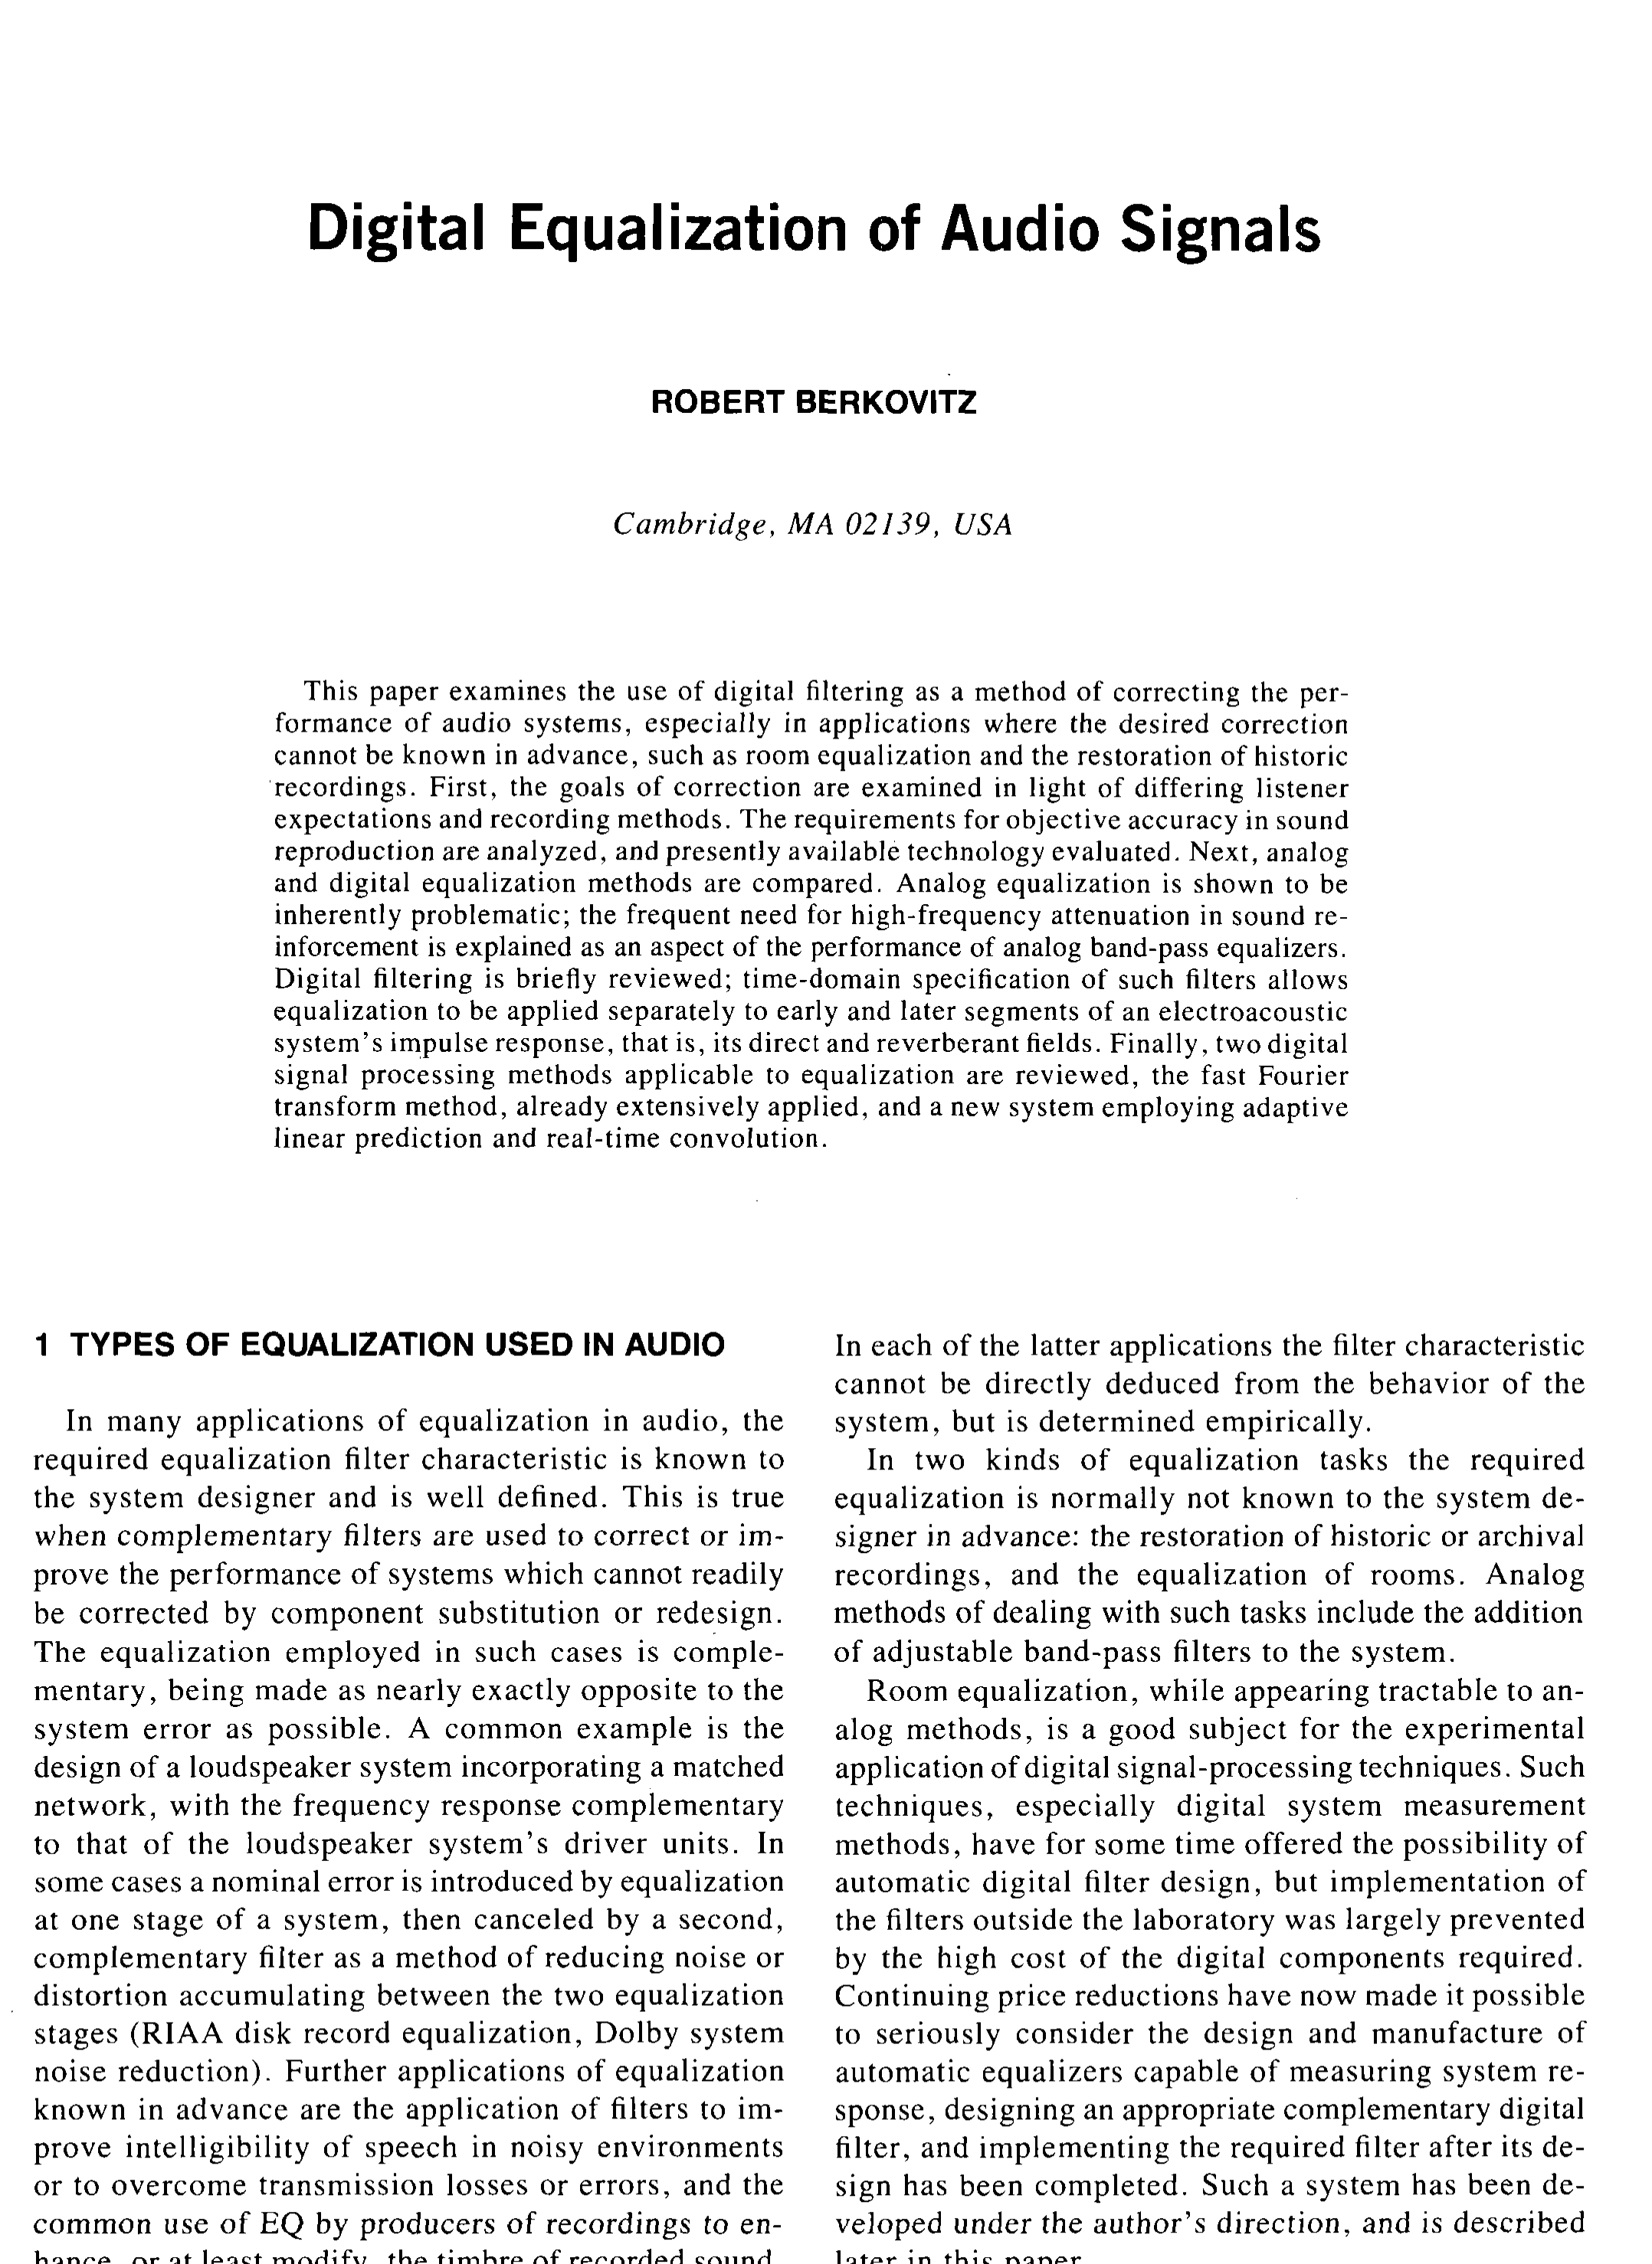 Aes E Library Digital Equalization Of Audio Signals